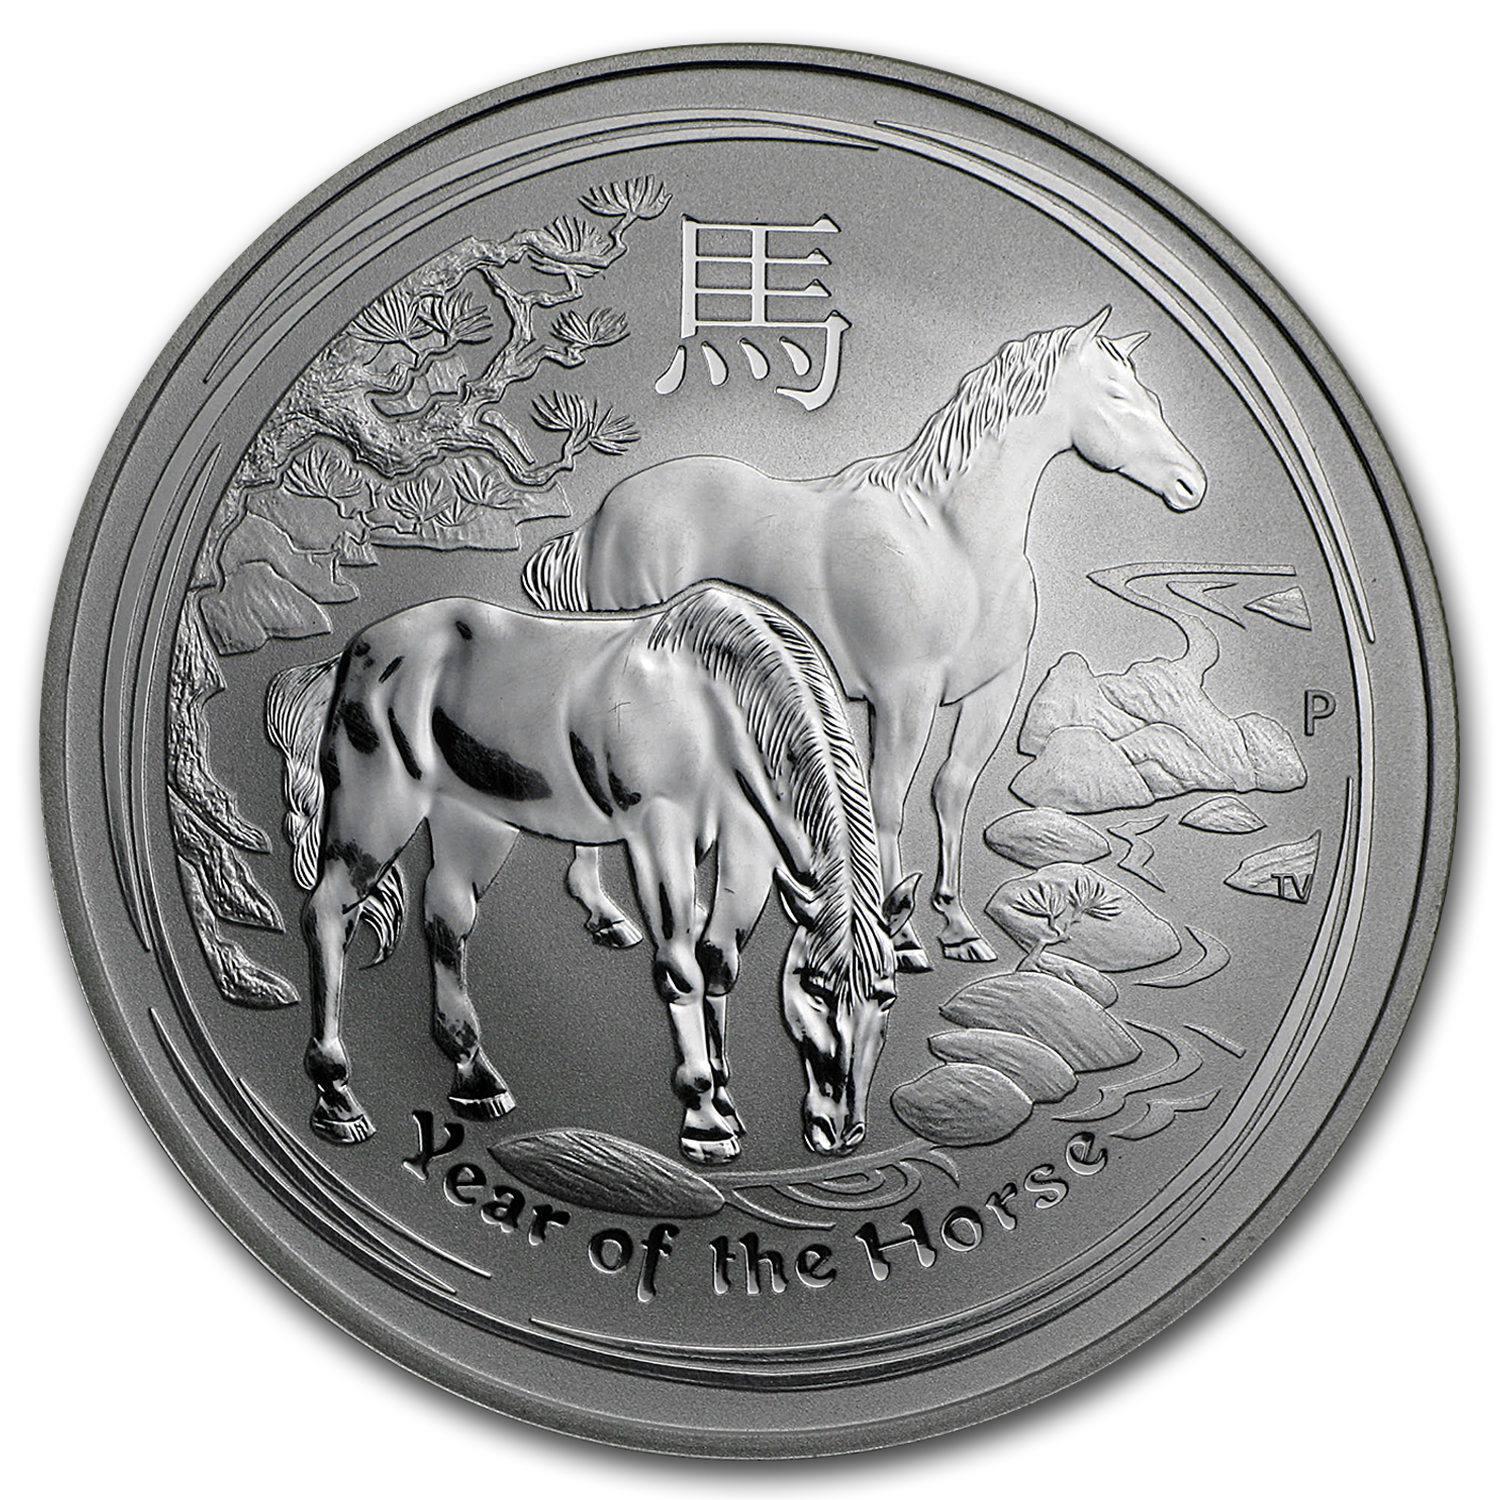 2014 Australia 1 oz Silver Year of the Horse (Abrasions)